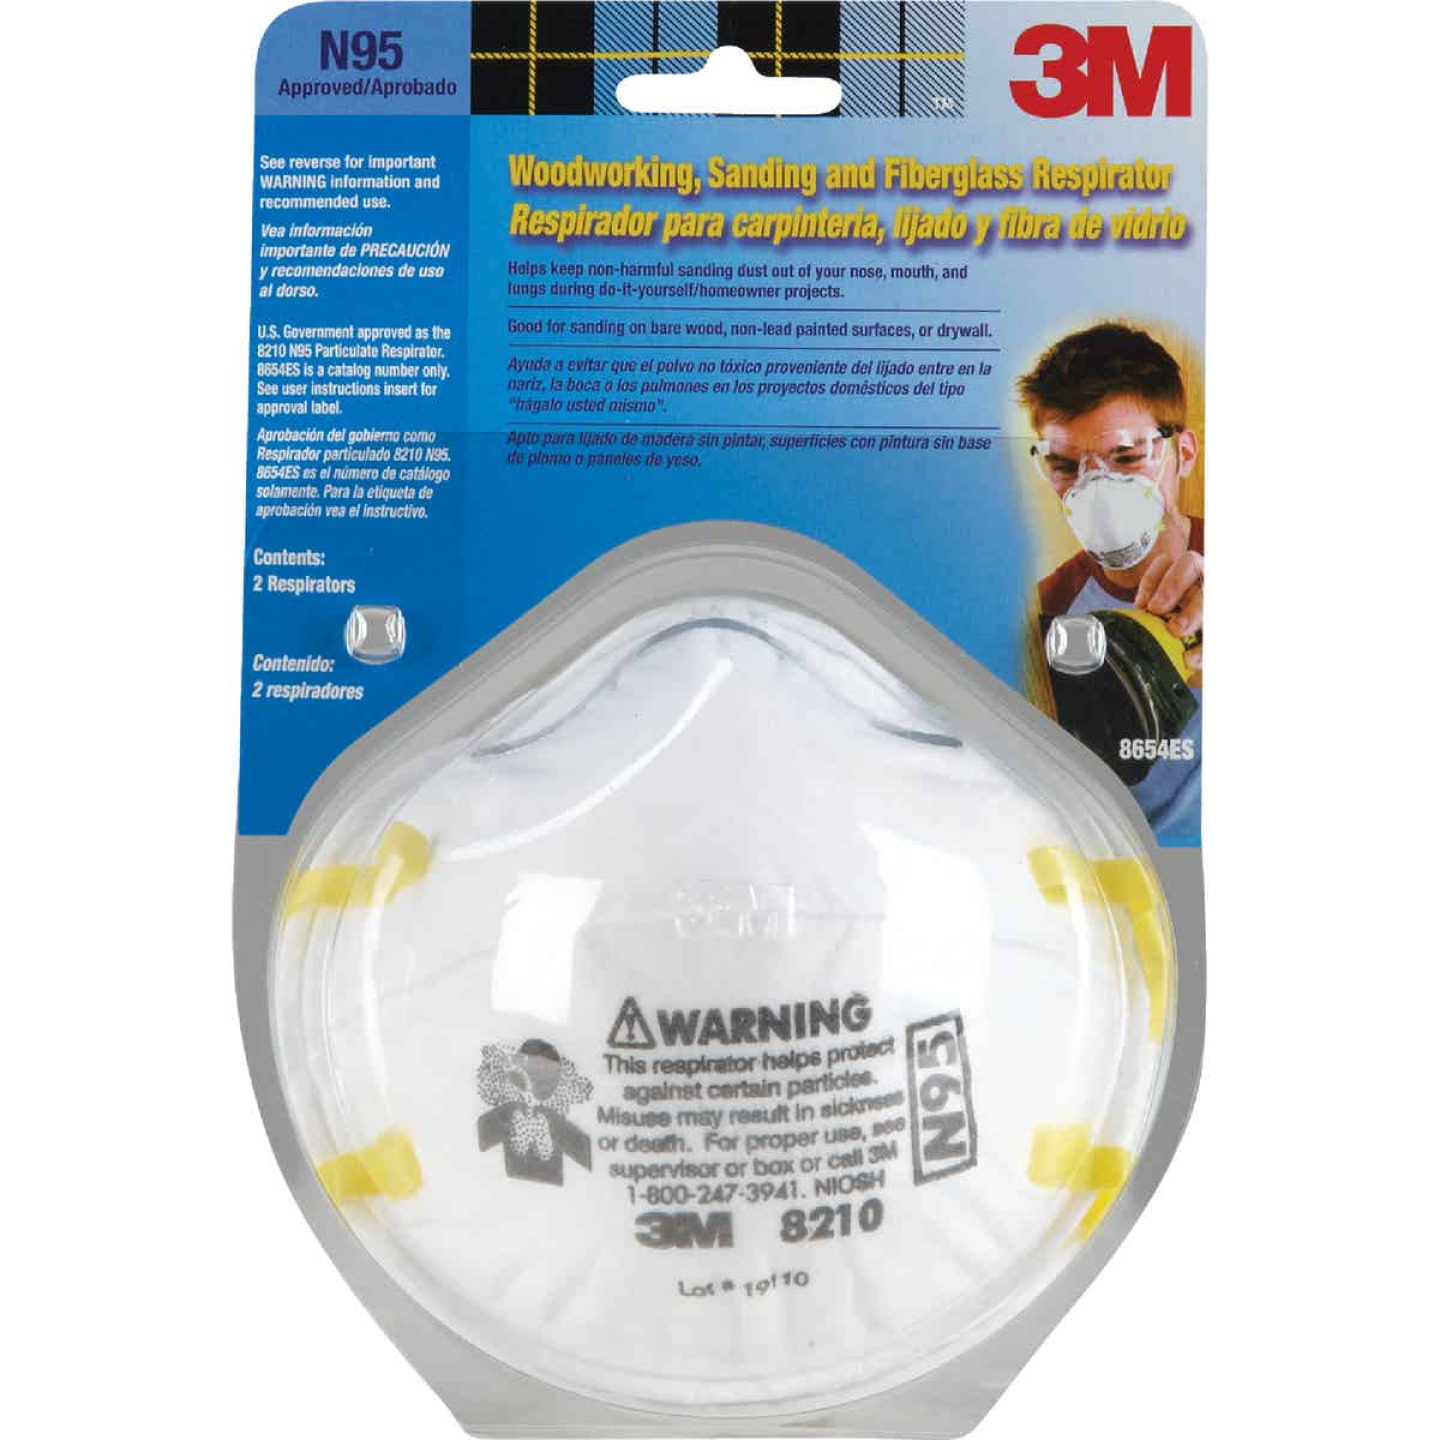 3M N95 Woodworking, Sanding and Fiberglass Respirator (2-Pack) Image 2